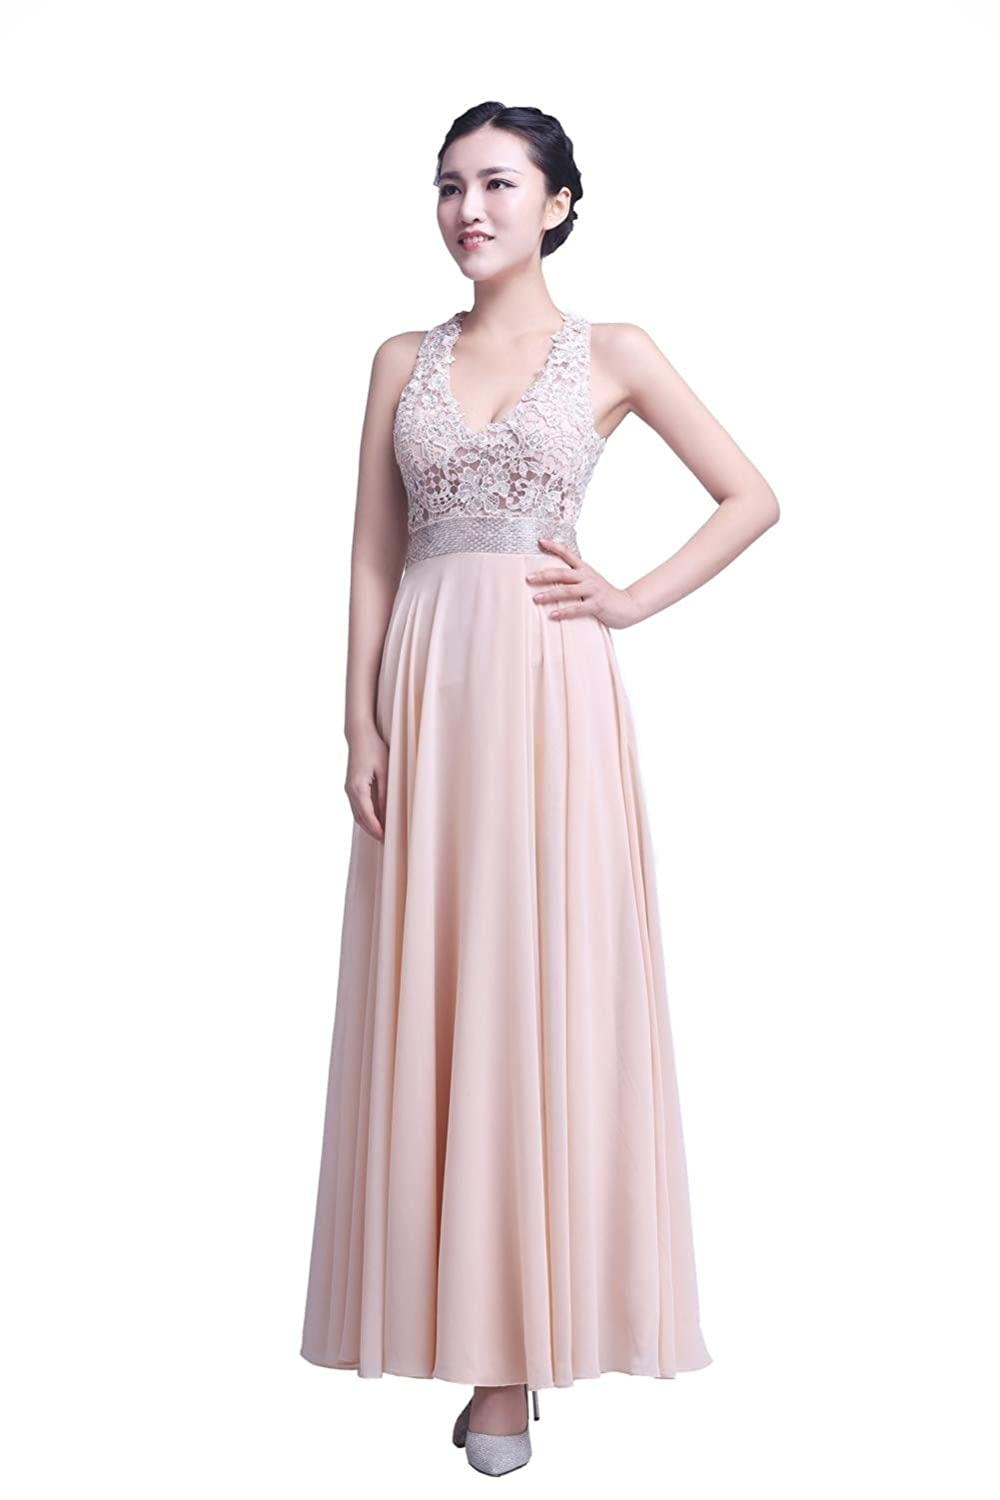 YiYaDawn Women's Lace Chiffon Party Prom Dress Backless Evening Gown